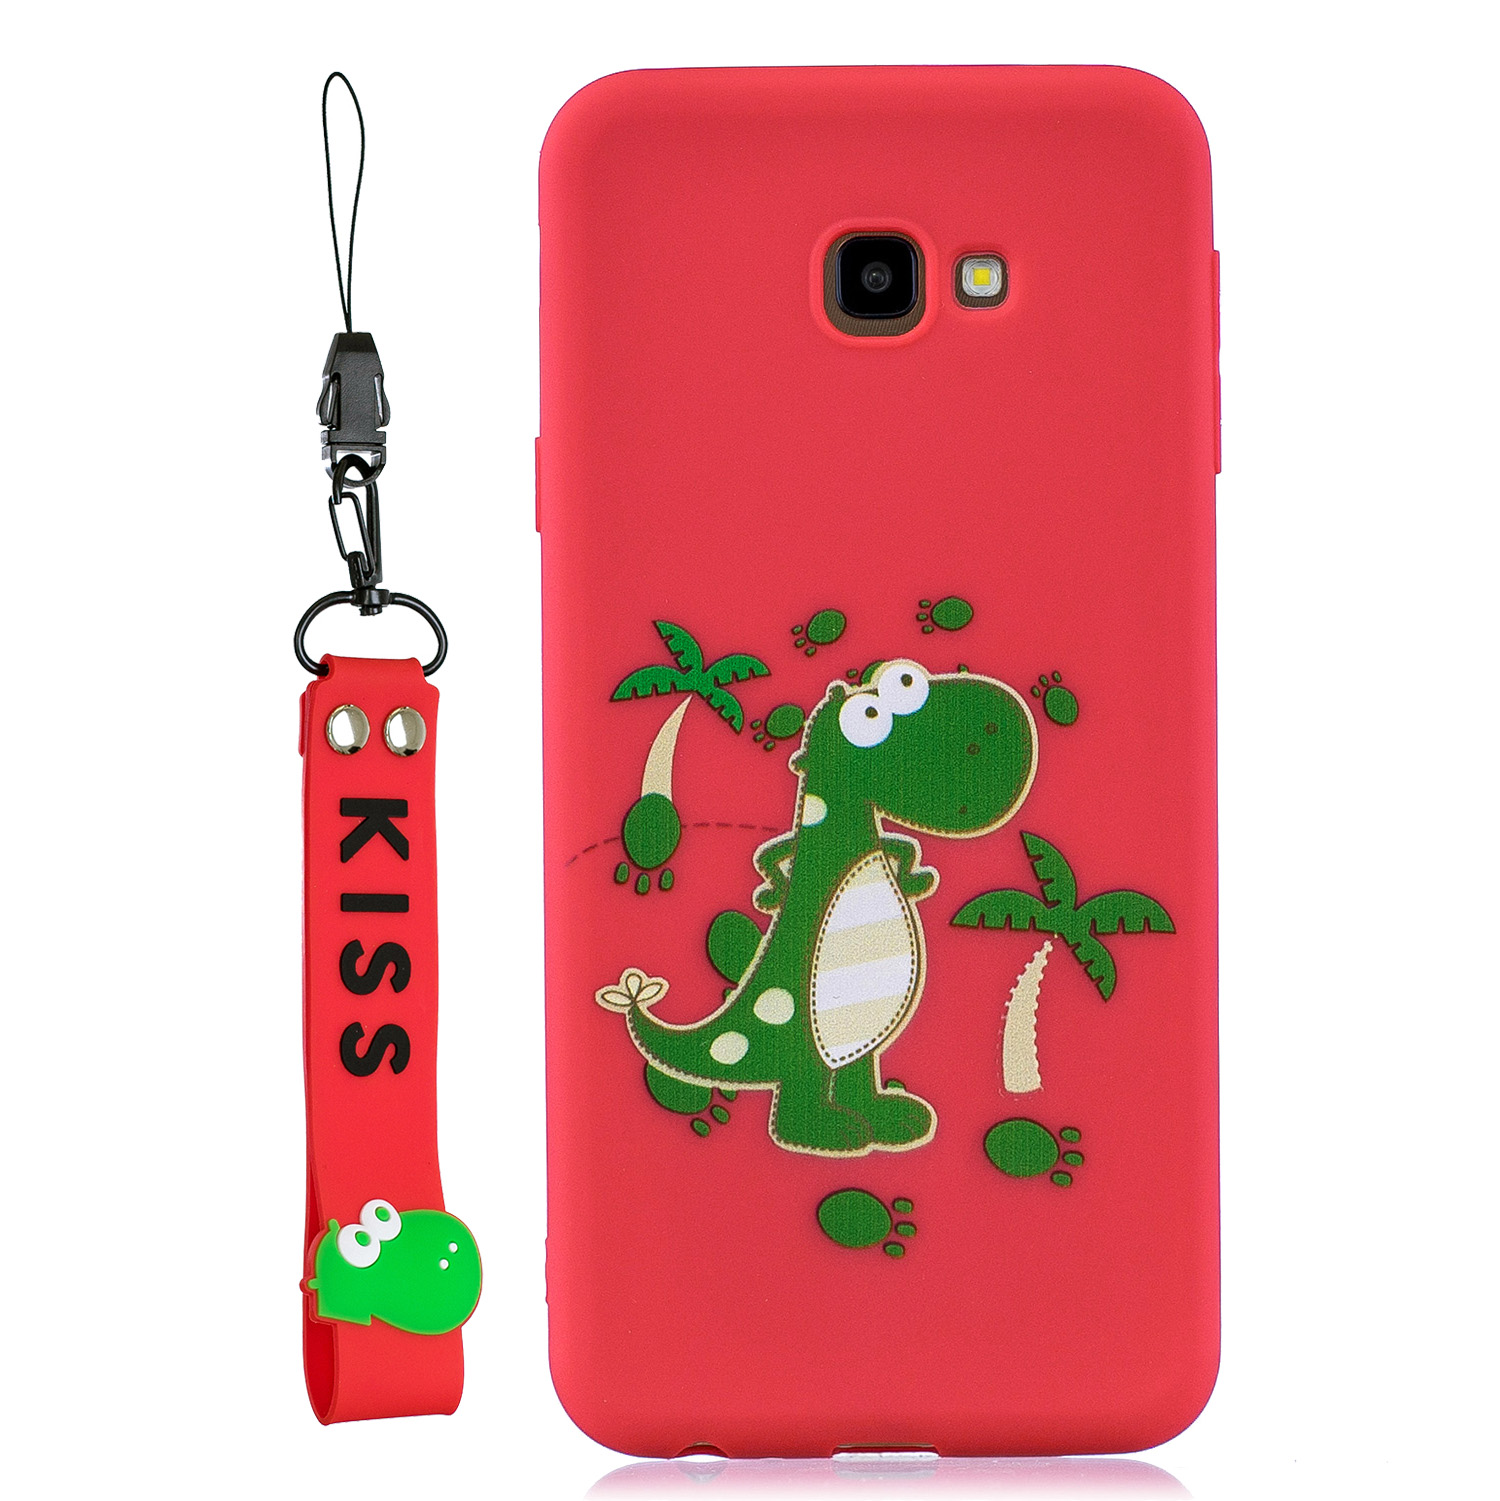 For Samsung A5 2017 Cartoon Lovely Coloured Painted Soft TPU Back Cover Non-slip Shockproof Full Protective Case with Lanyard red